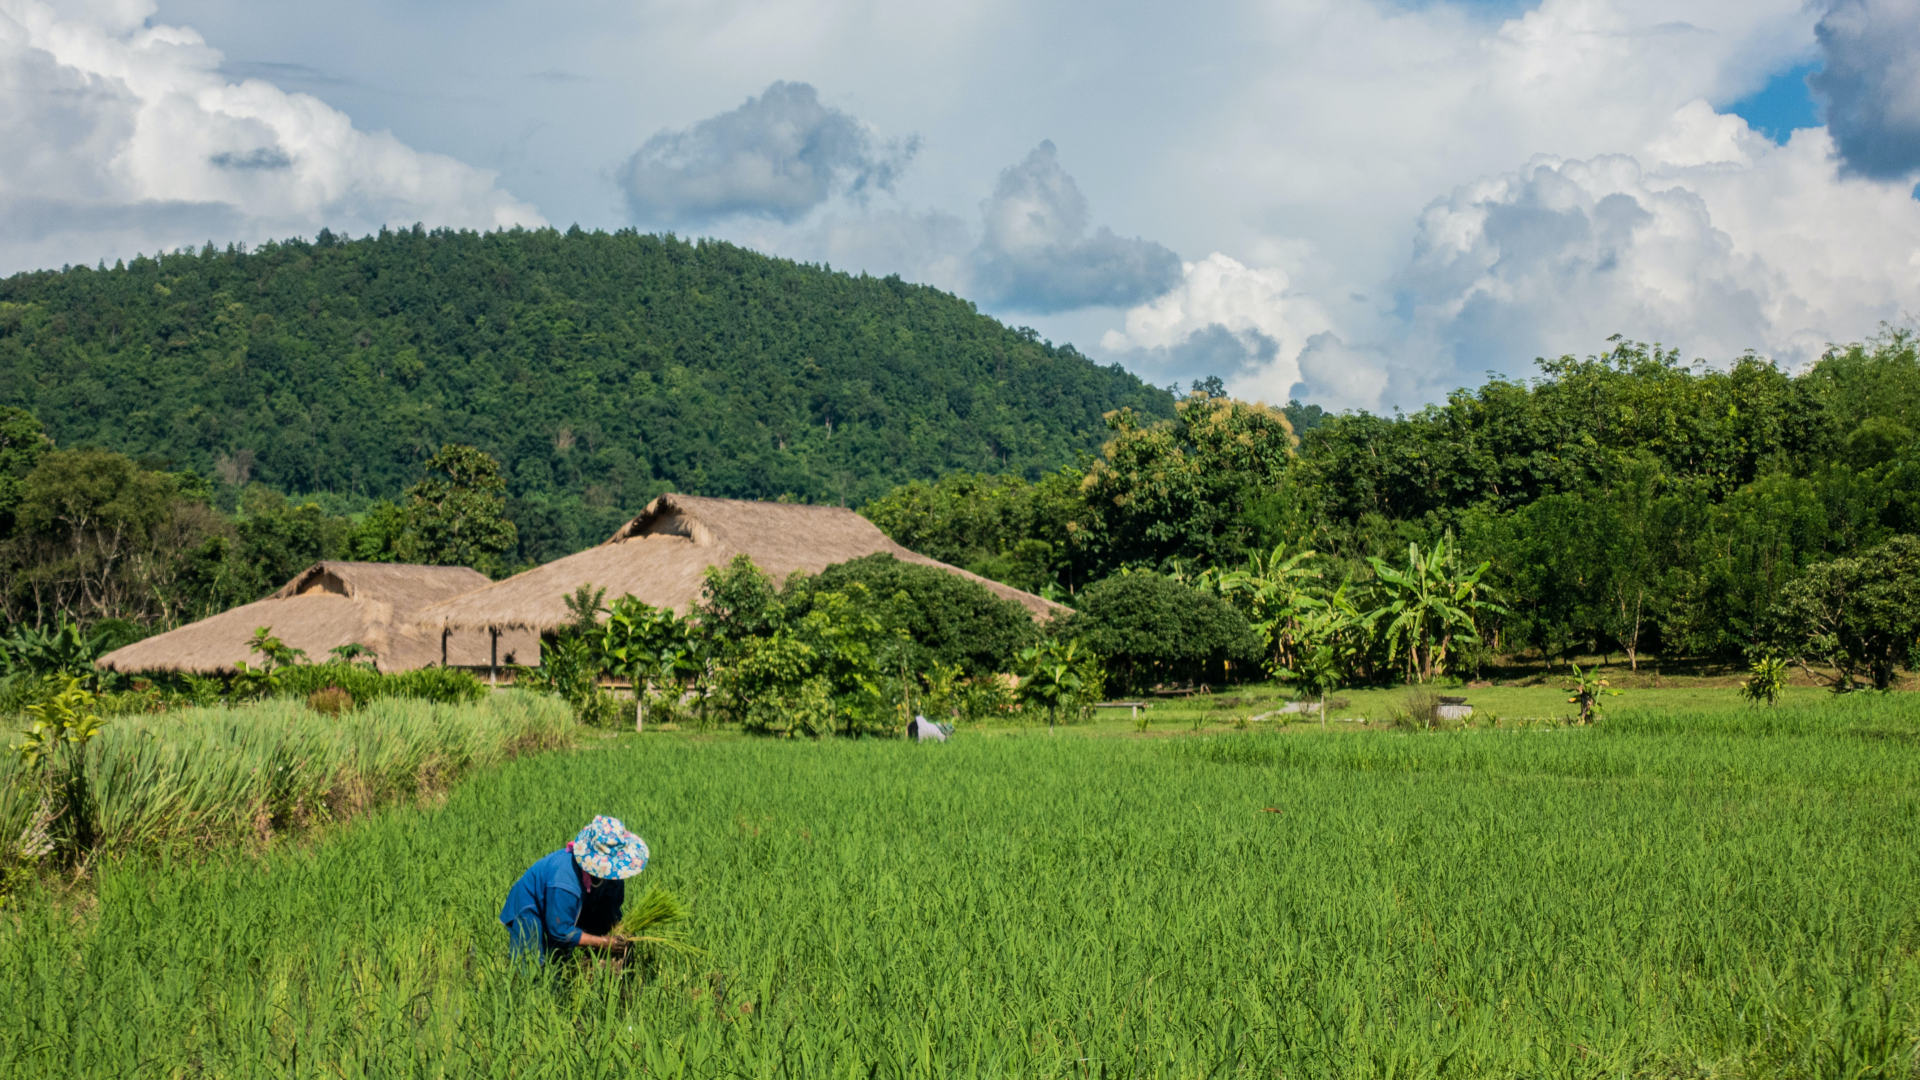 Custom Travel Planner Network-Thailand-Change Mai-Rice Farming-dennis-rochel-nd2P5OkWkMs-unsplash